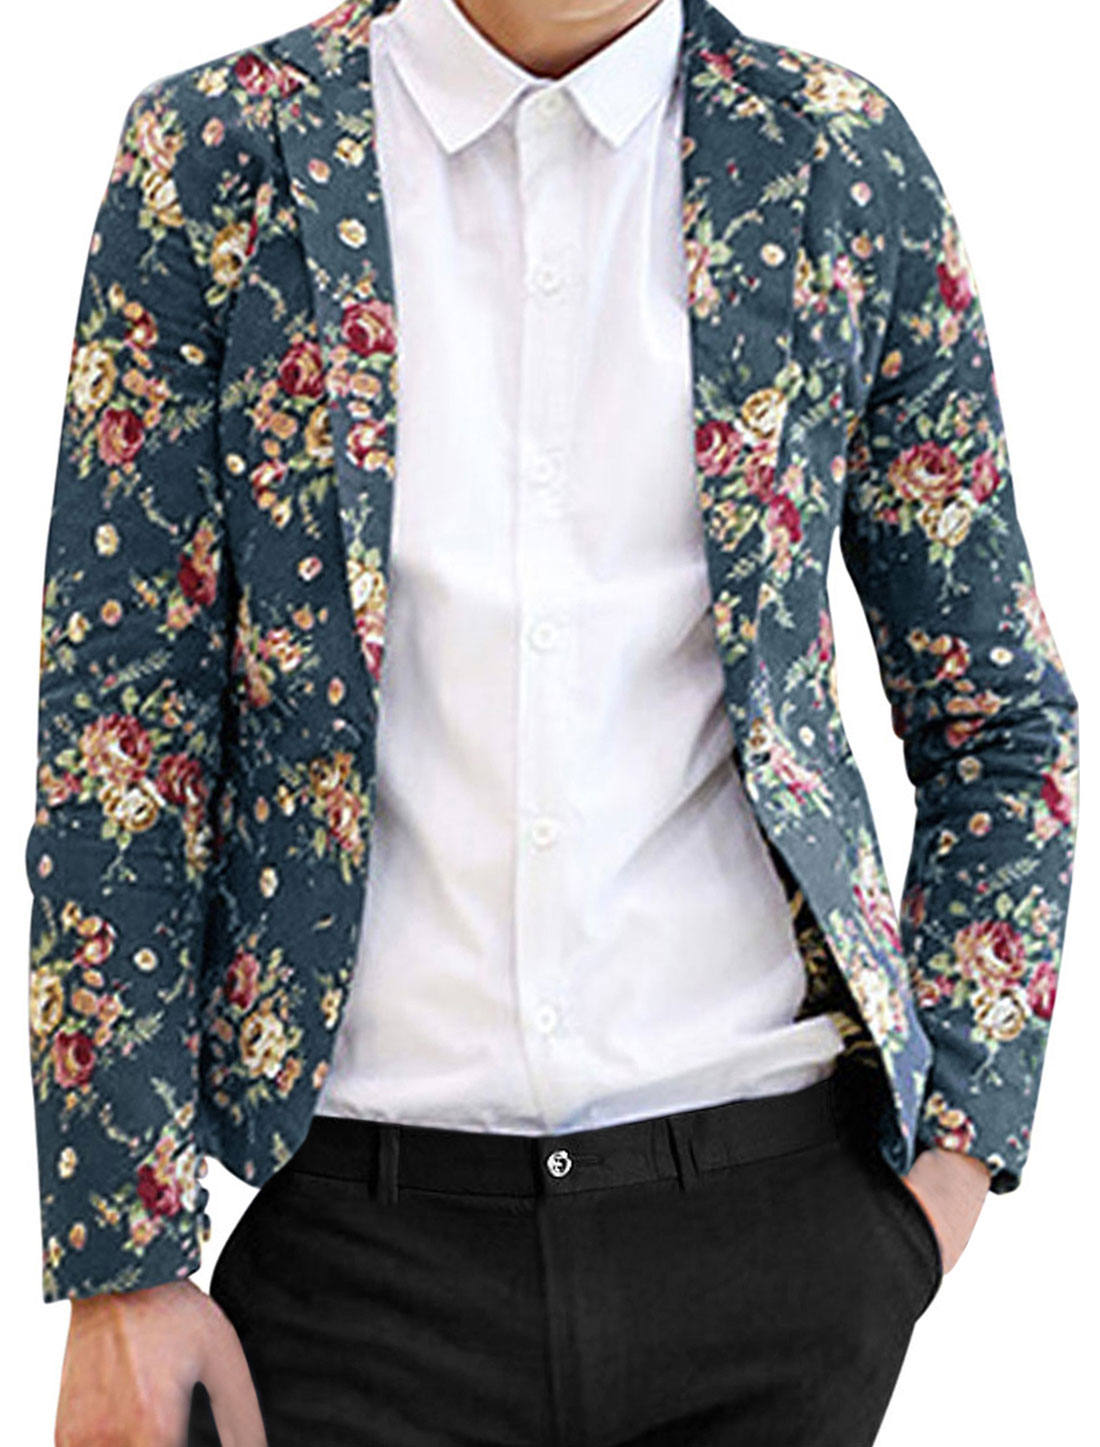 Men Padded Shoulder Allover Floral Print One Button Stylish Linen Blazer Gray M